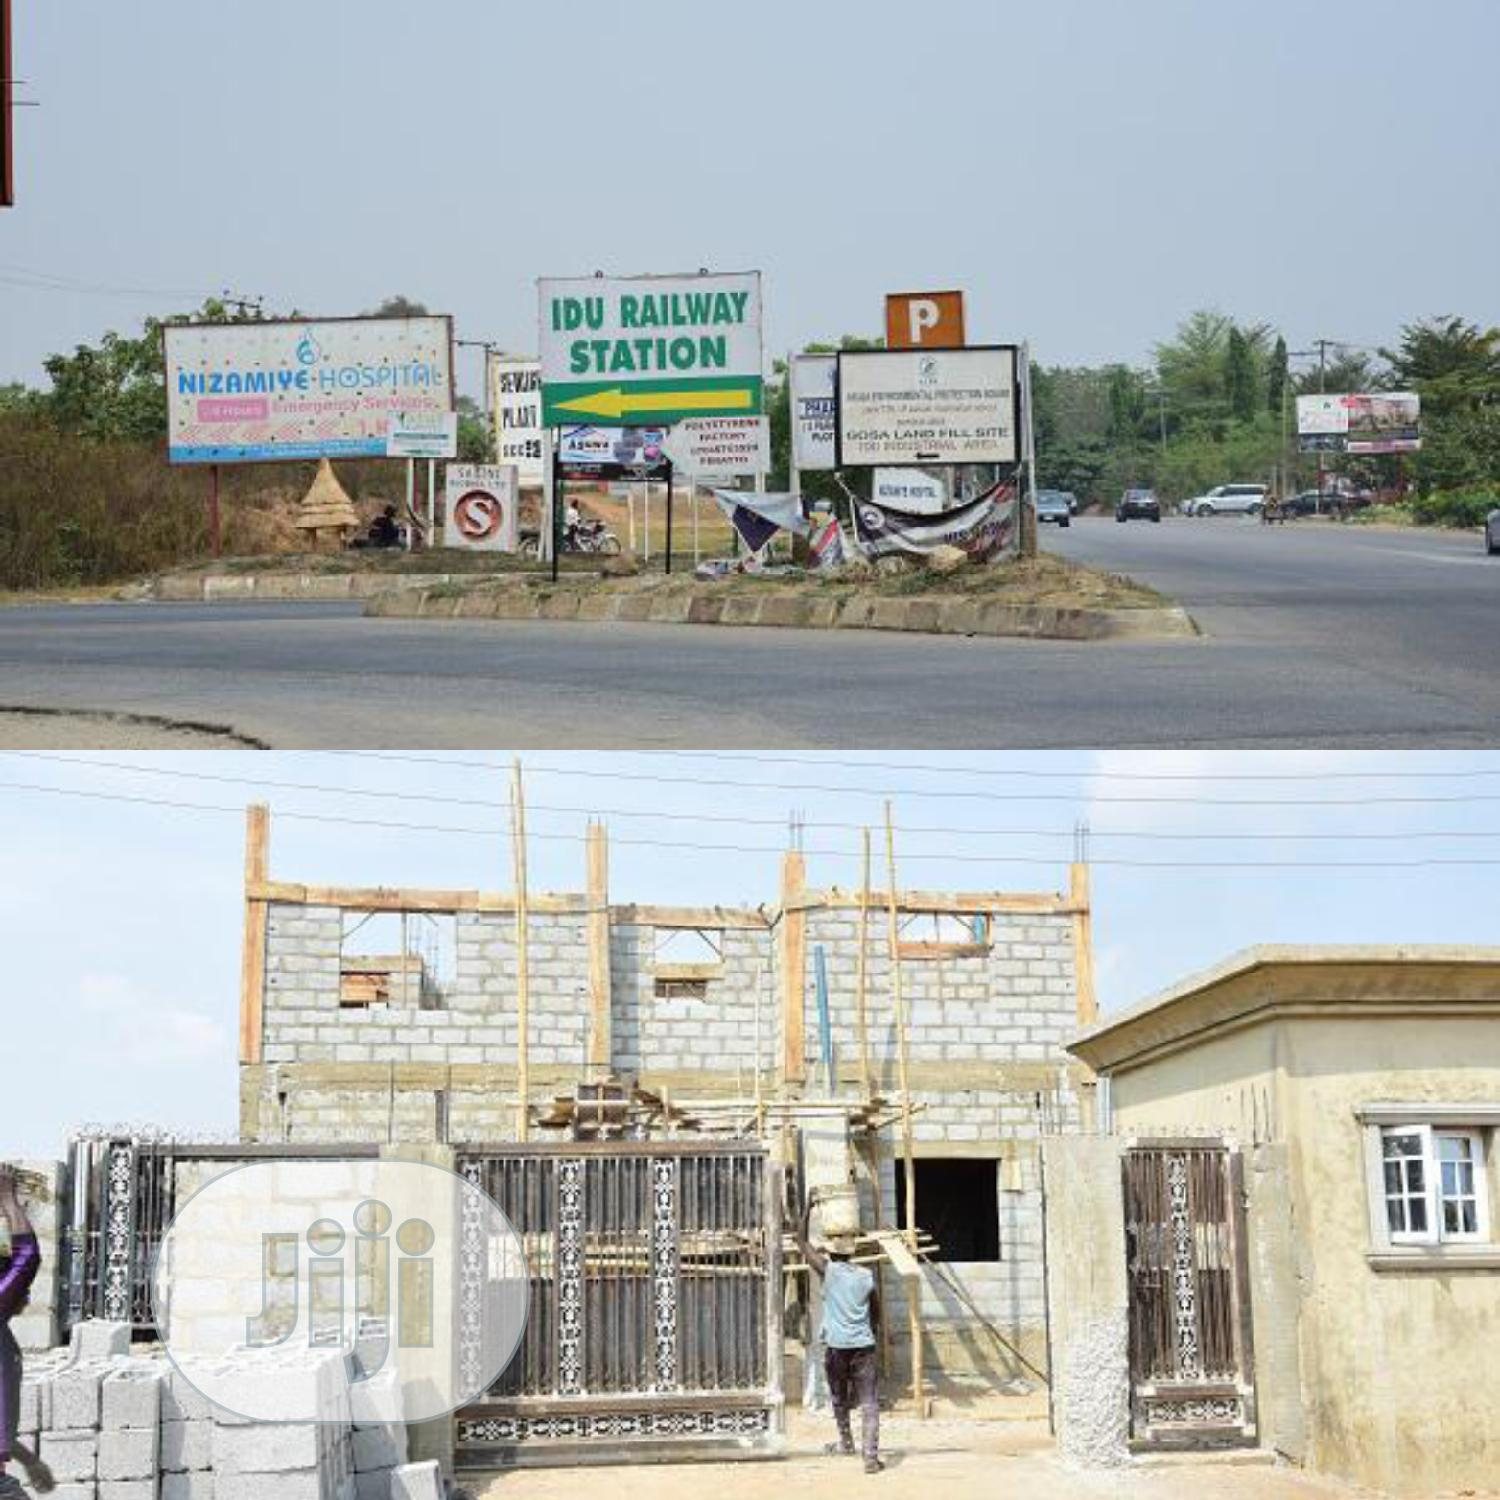 Plots Of Land In BROADVIEW ESTATE, Idu Station, Abuja   Land & Plots for Rent for sale in Idu Industrial, Abuja (FCT) State, Nigeria